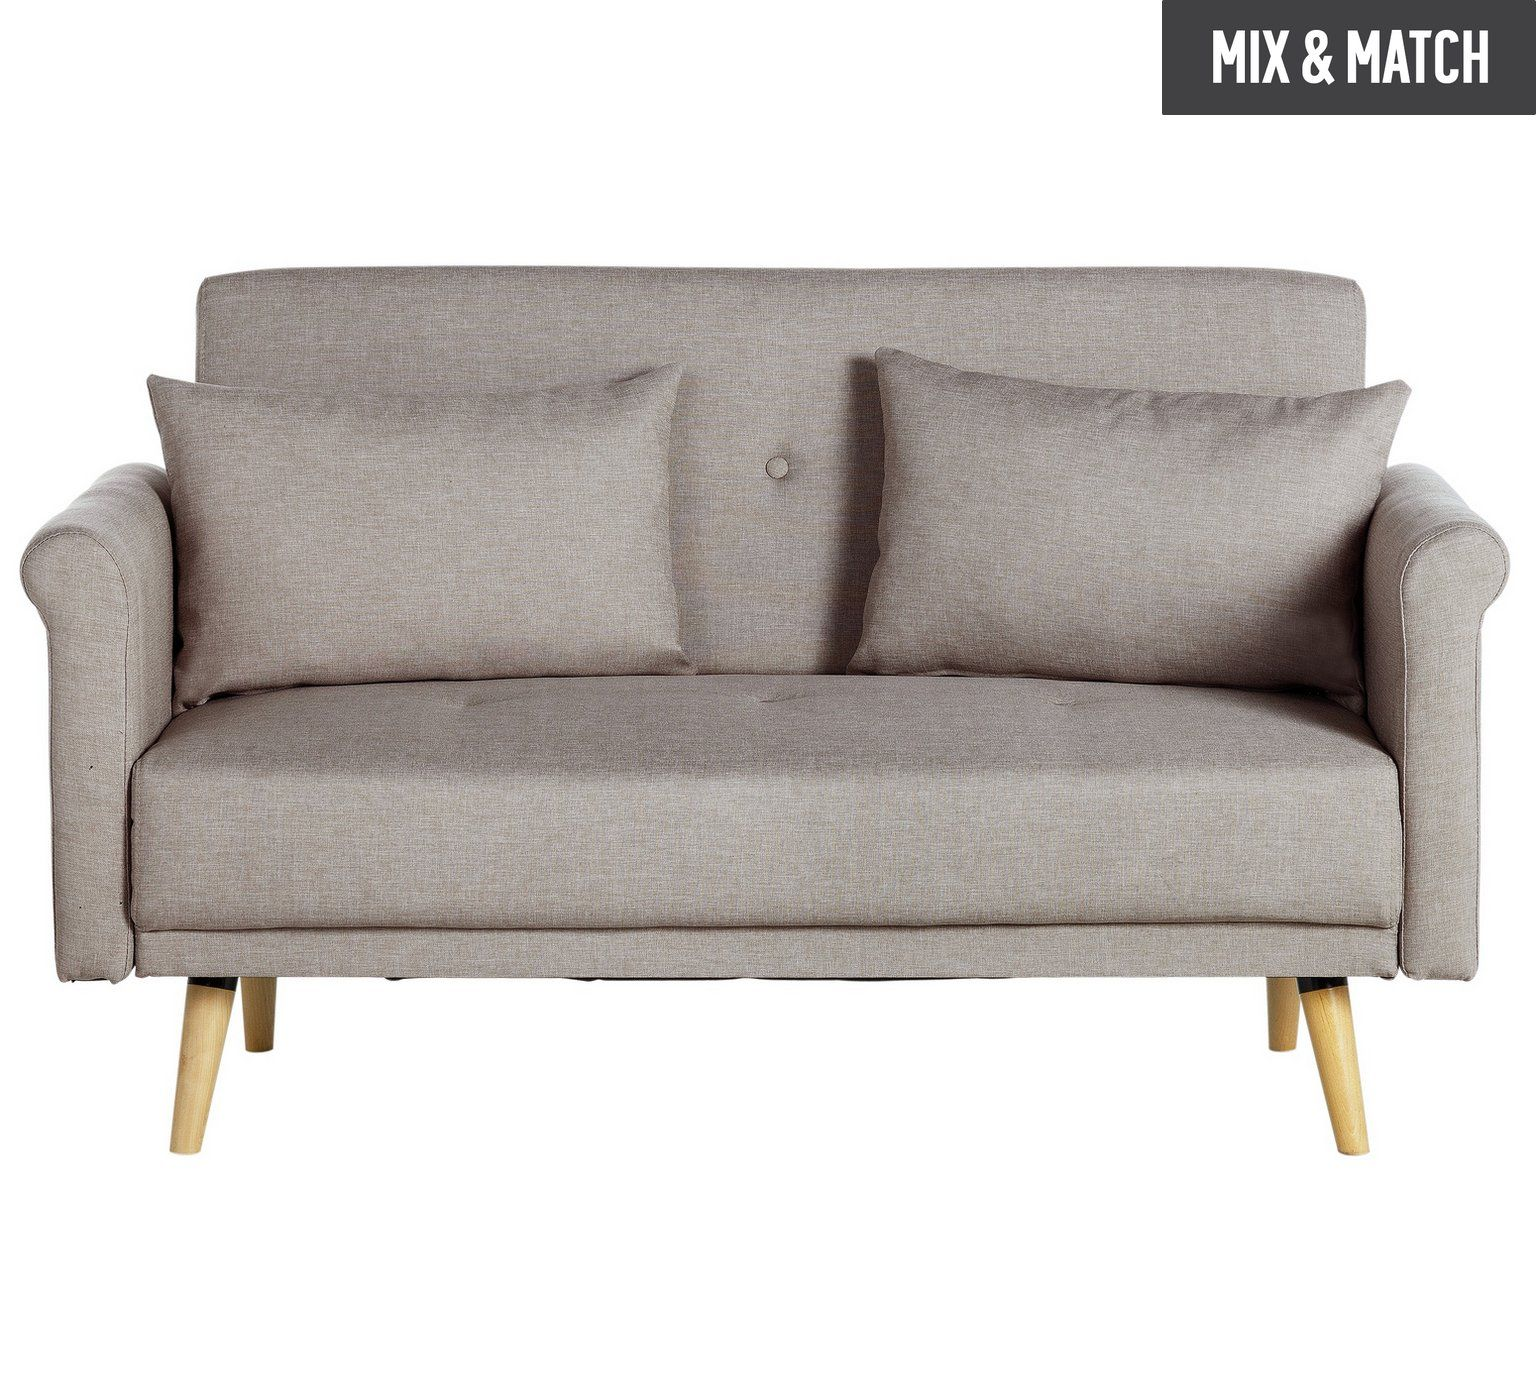 Buy Argos Home Evie 2 Seater Fabric Sofa In A Box Natural Sofas Natural Sofas Fabric Sofa Argos Home